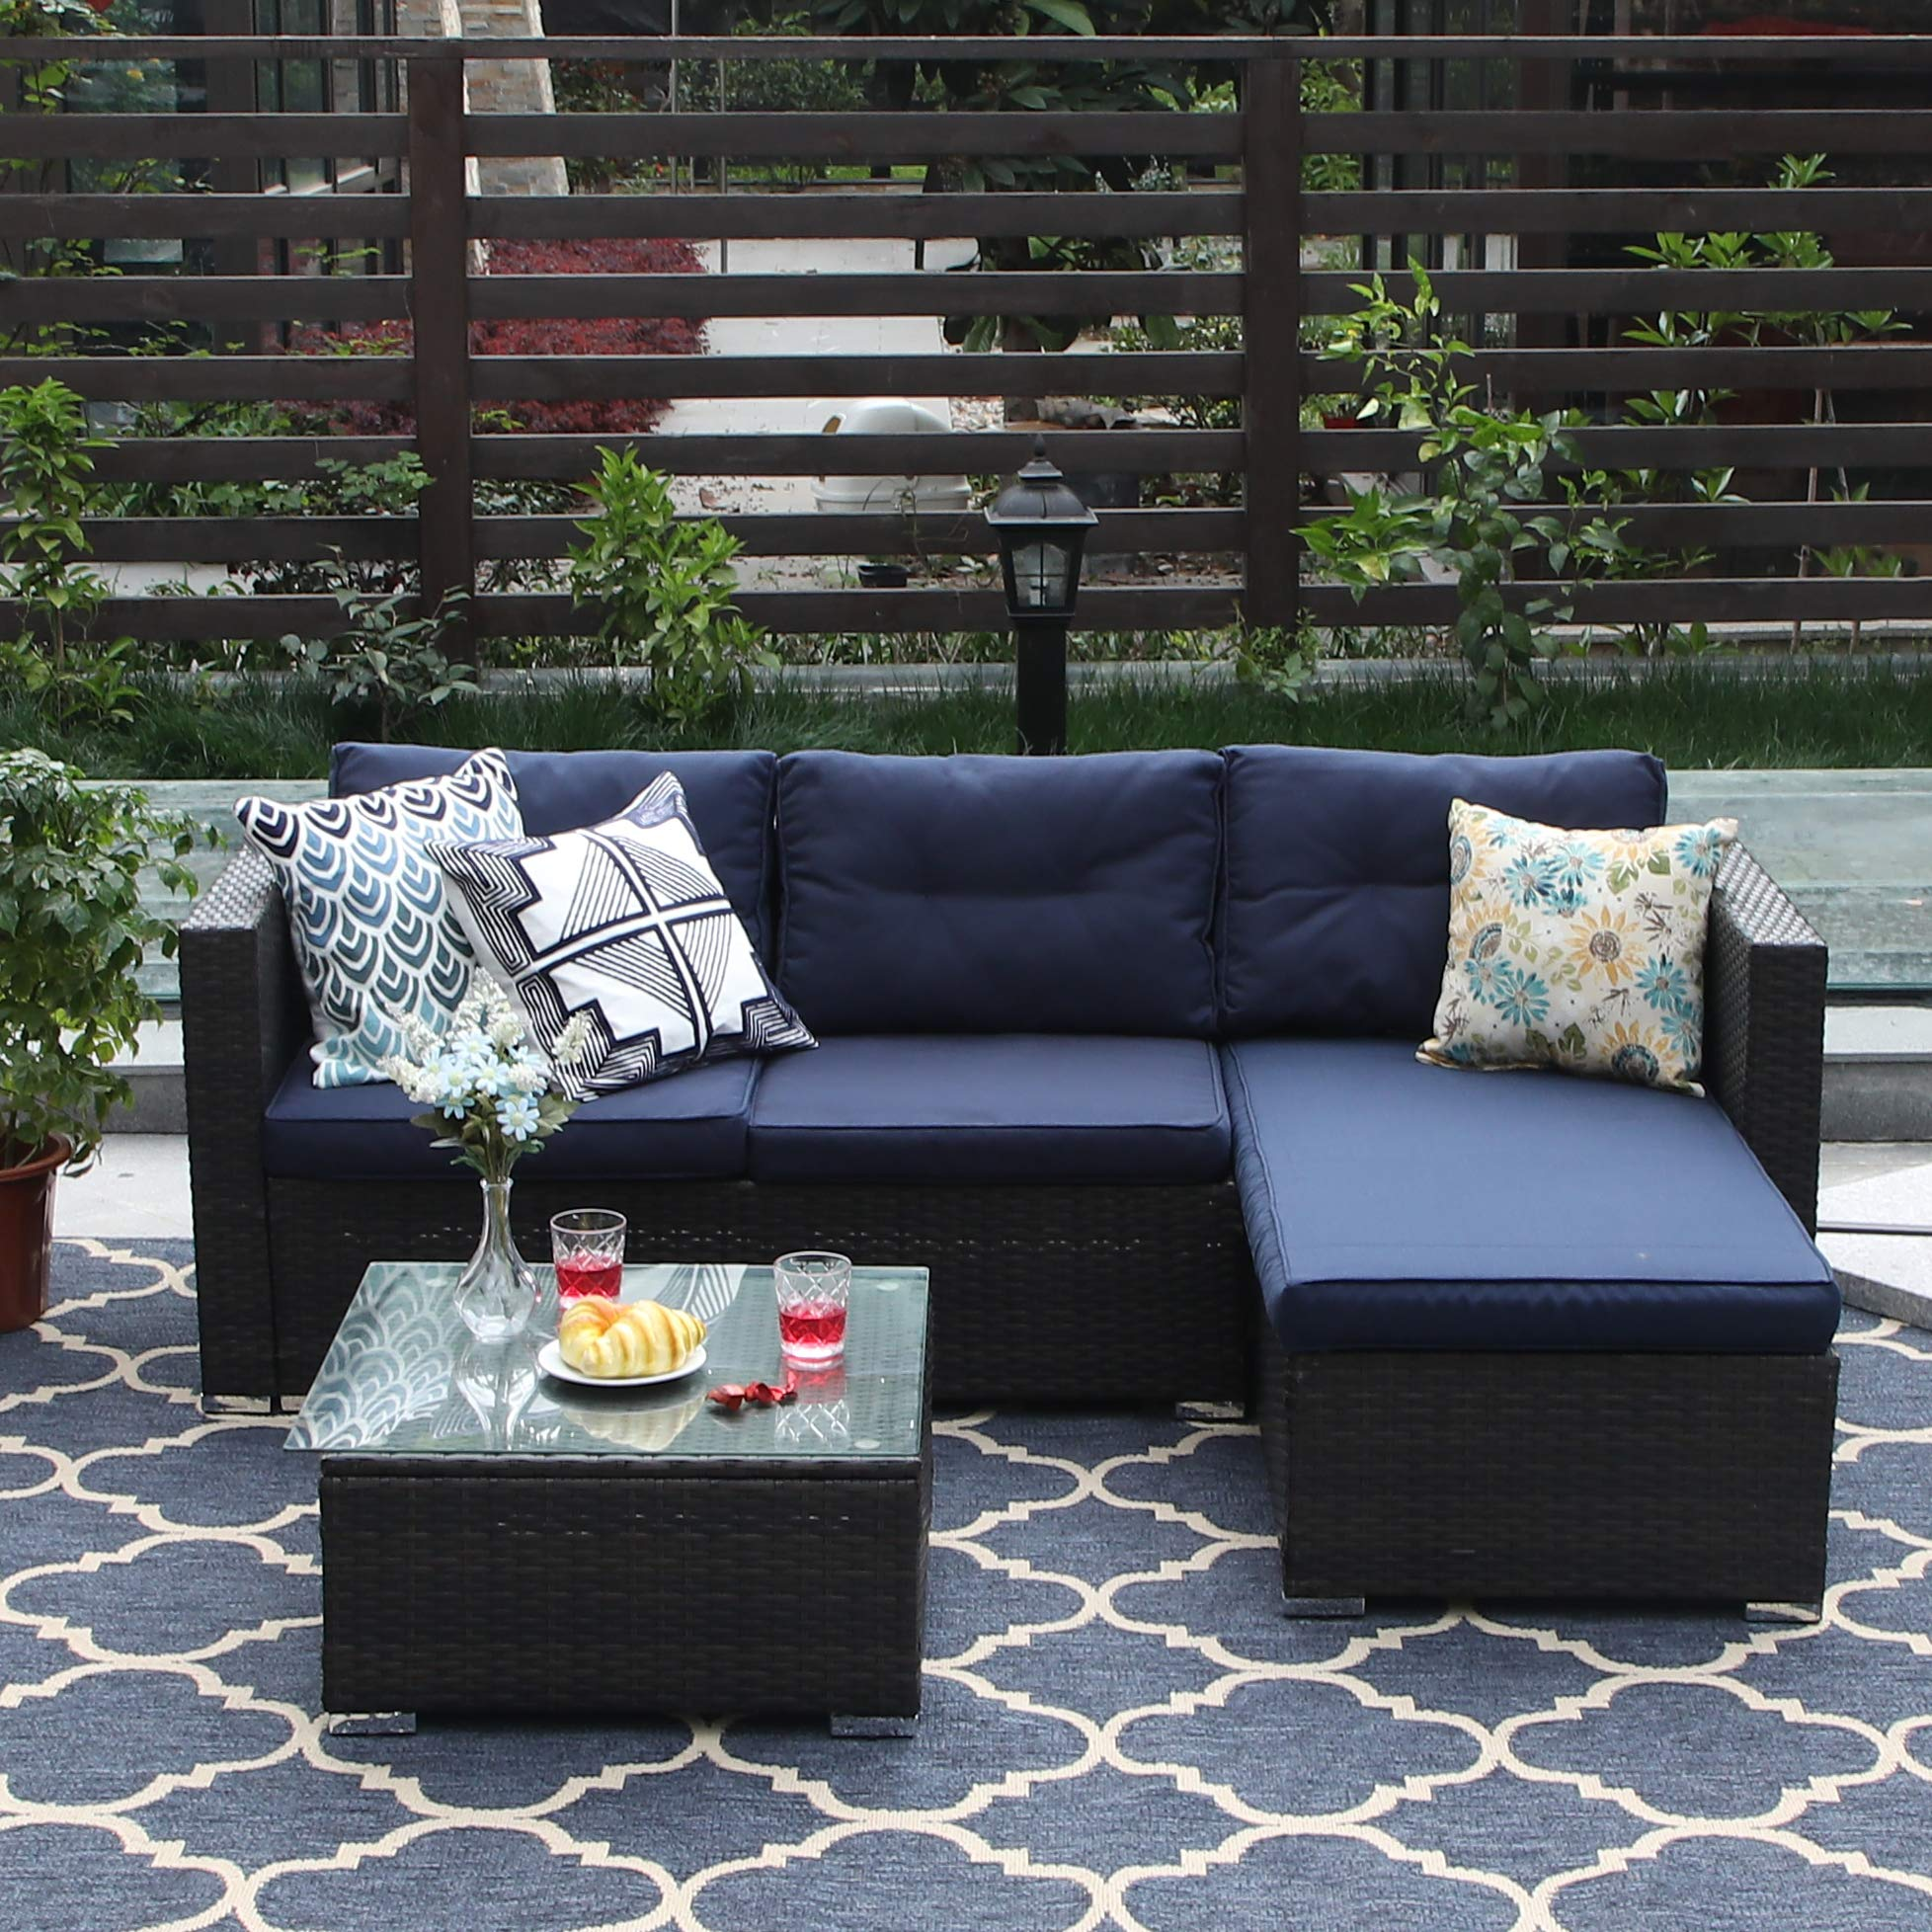 PHI VILLA 3-Piece Patio Furniture Set Rattan Sectional Sofa Wicker Furniture, Blue by PHI VILLA